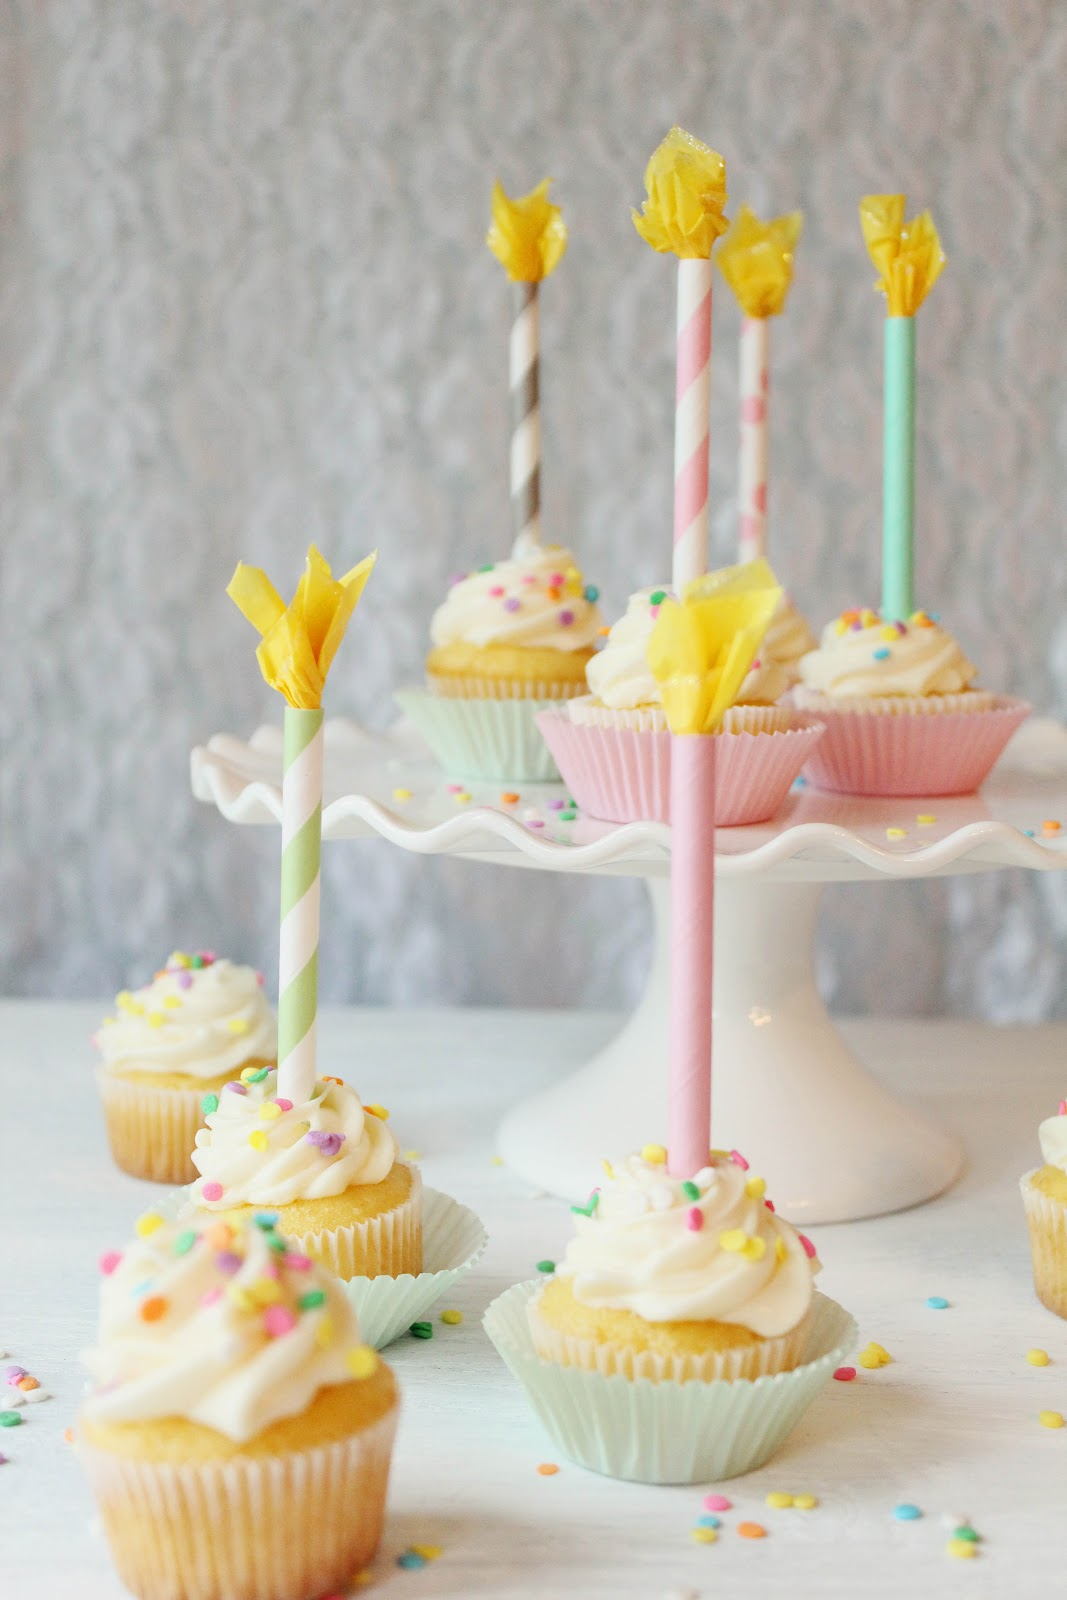 Icing Designs: DIY Paper Straw Birthday Candle Cupcake Toppers